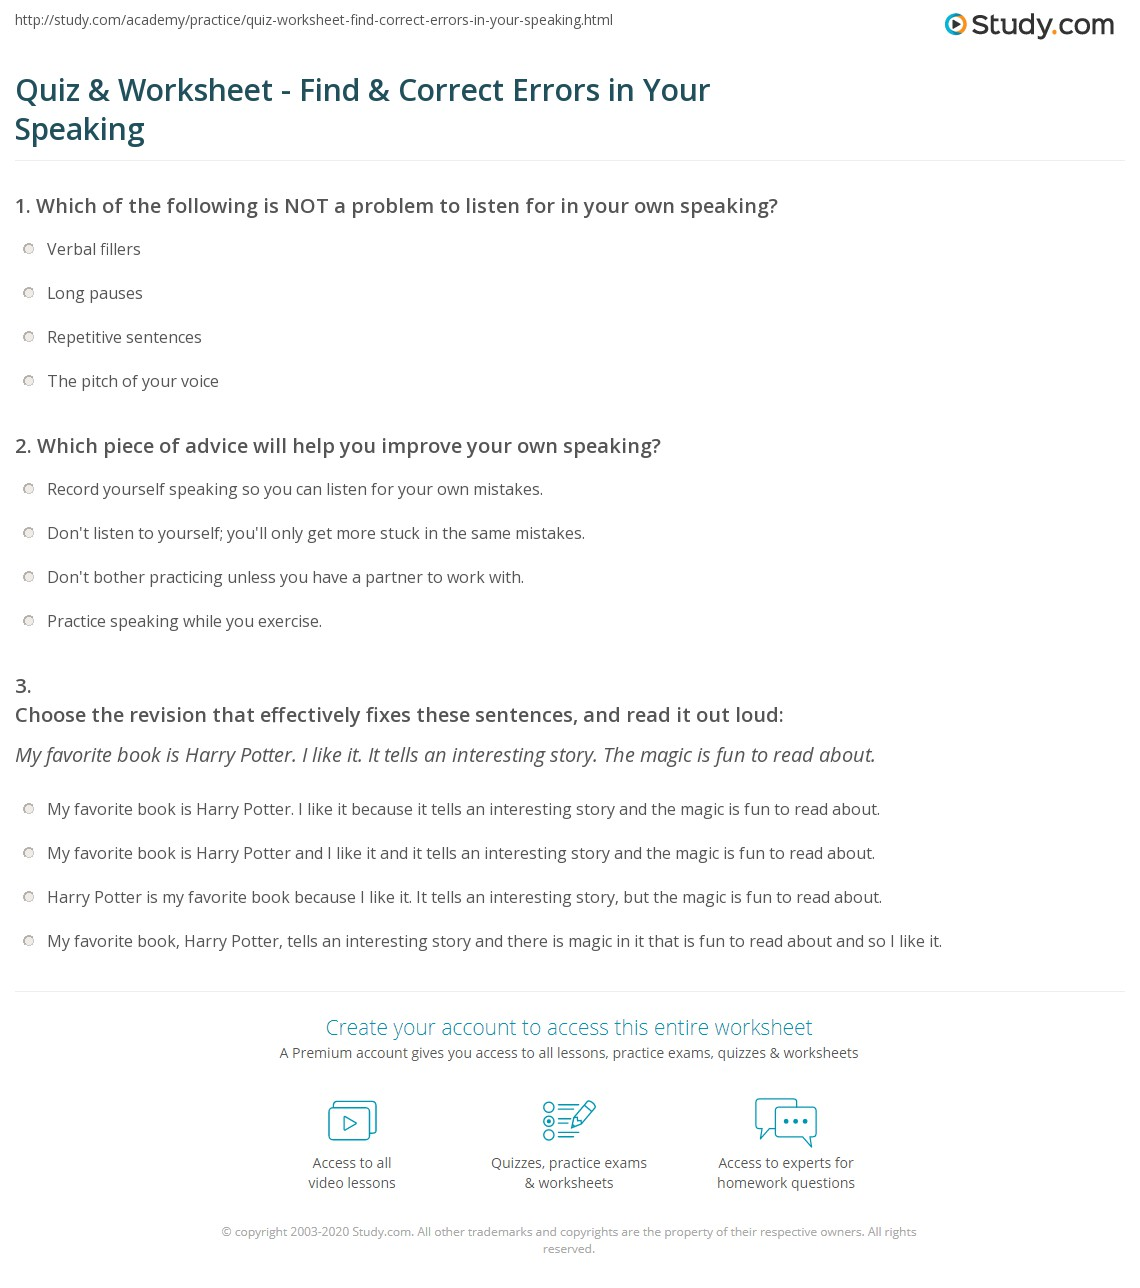 Error Correction Search Worksheet Results Sentence Editing besides Printables  Correcting Grammar Worksheets  Lemonlilyfestival besides  in addition grammatical errors worksheets – nghean as well Grammar Sentences Worksheets Correction Pdf English Editing further Error Correction worksheet   Worksheets for grammar   English further Editing Grammar Worksheets Correct The Sentence Punctuation besides Grammar Corrections Worksheet Editing Sentences Worksheets Pdf furthermore Year 5 and 6 Correct the Spelling Mistakes Worksheet   Worksheets further Error correction worksheets also  in addition Sentence Correction Worksheets   Homedressage in addition sentence correction worksheets pdf – paigeelizabeth info also Free Grammar And Sentence Structure Checker Fresh Subject Verb further  together with Paragraph Correction Worksheet Grade Grammar Worksheets Punctuation. on correcting errors in sentences worksheets